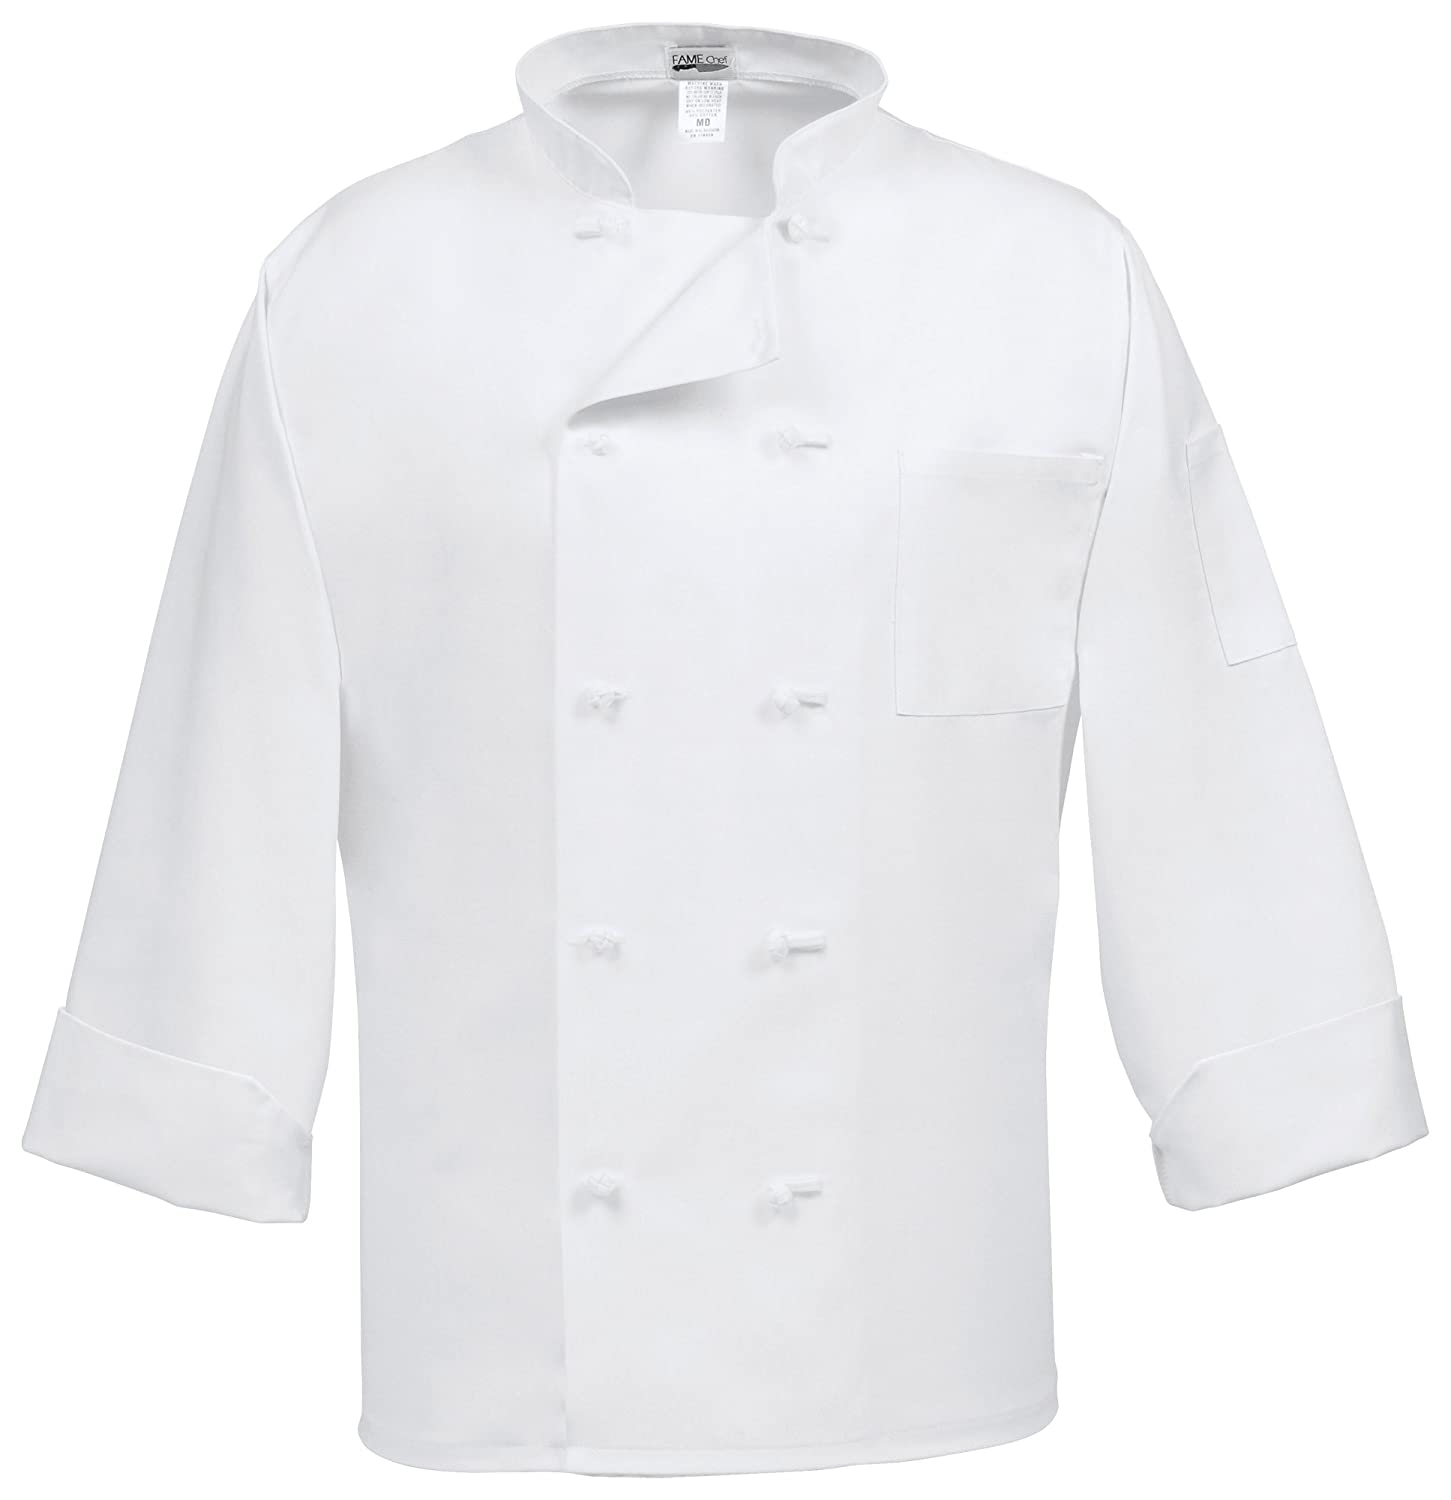 Fame Adult's Chef Coat - French buttons-White-Medium Fame Fabrics 72060981983